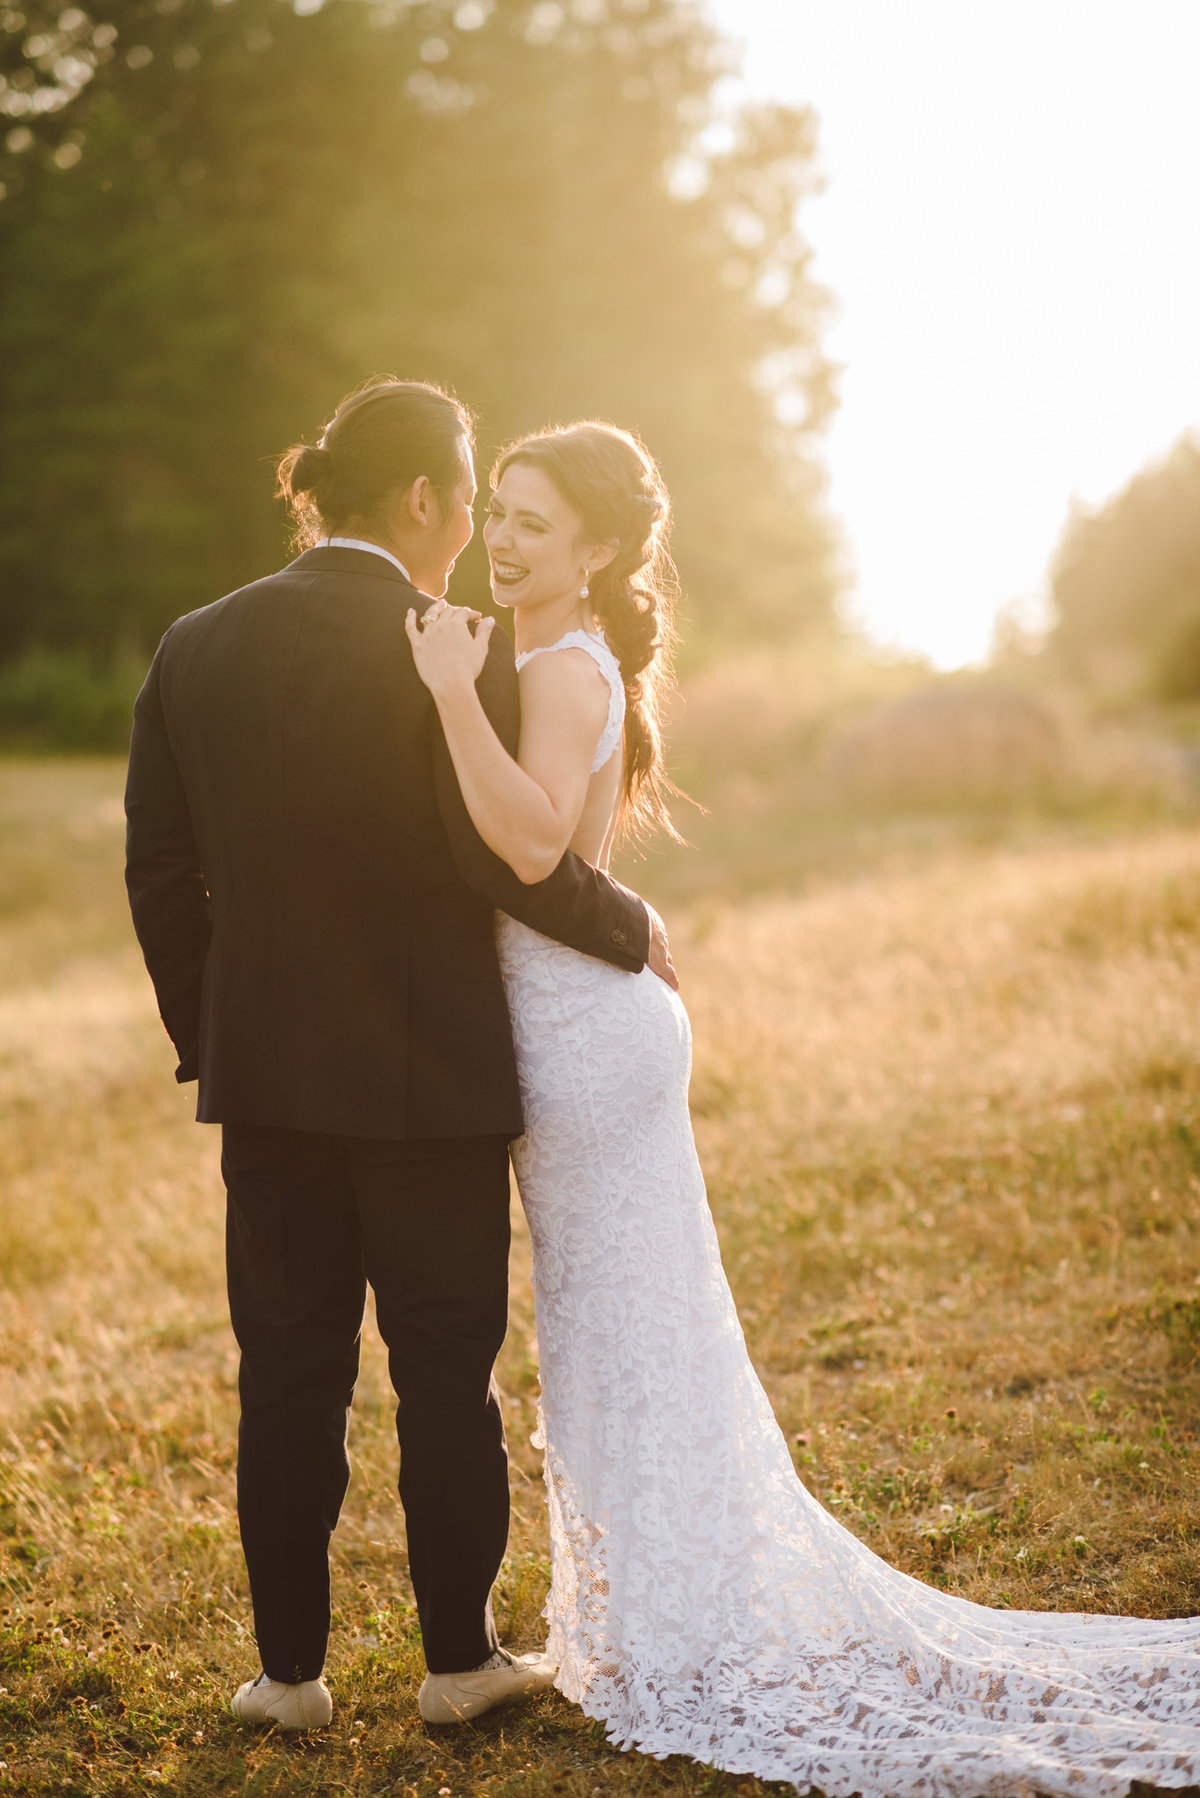 Seattle Wedding Photographer Karissa Roe Snoqualmie Point Park Wedding Photos-4